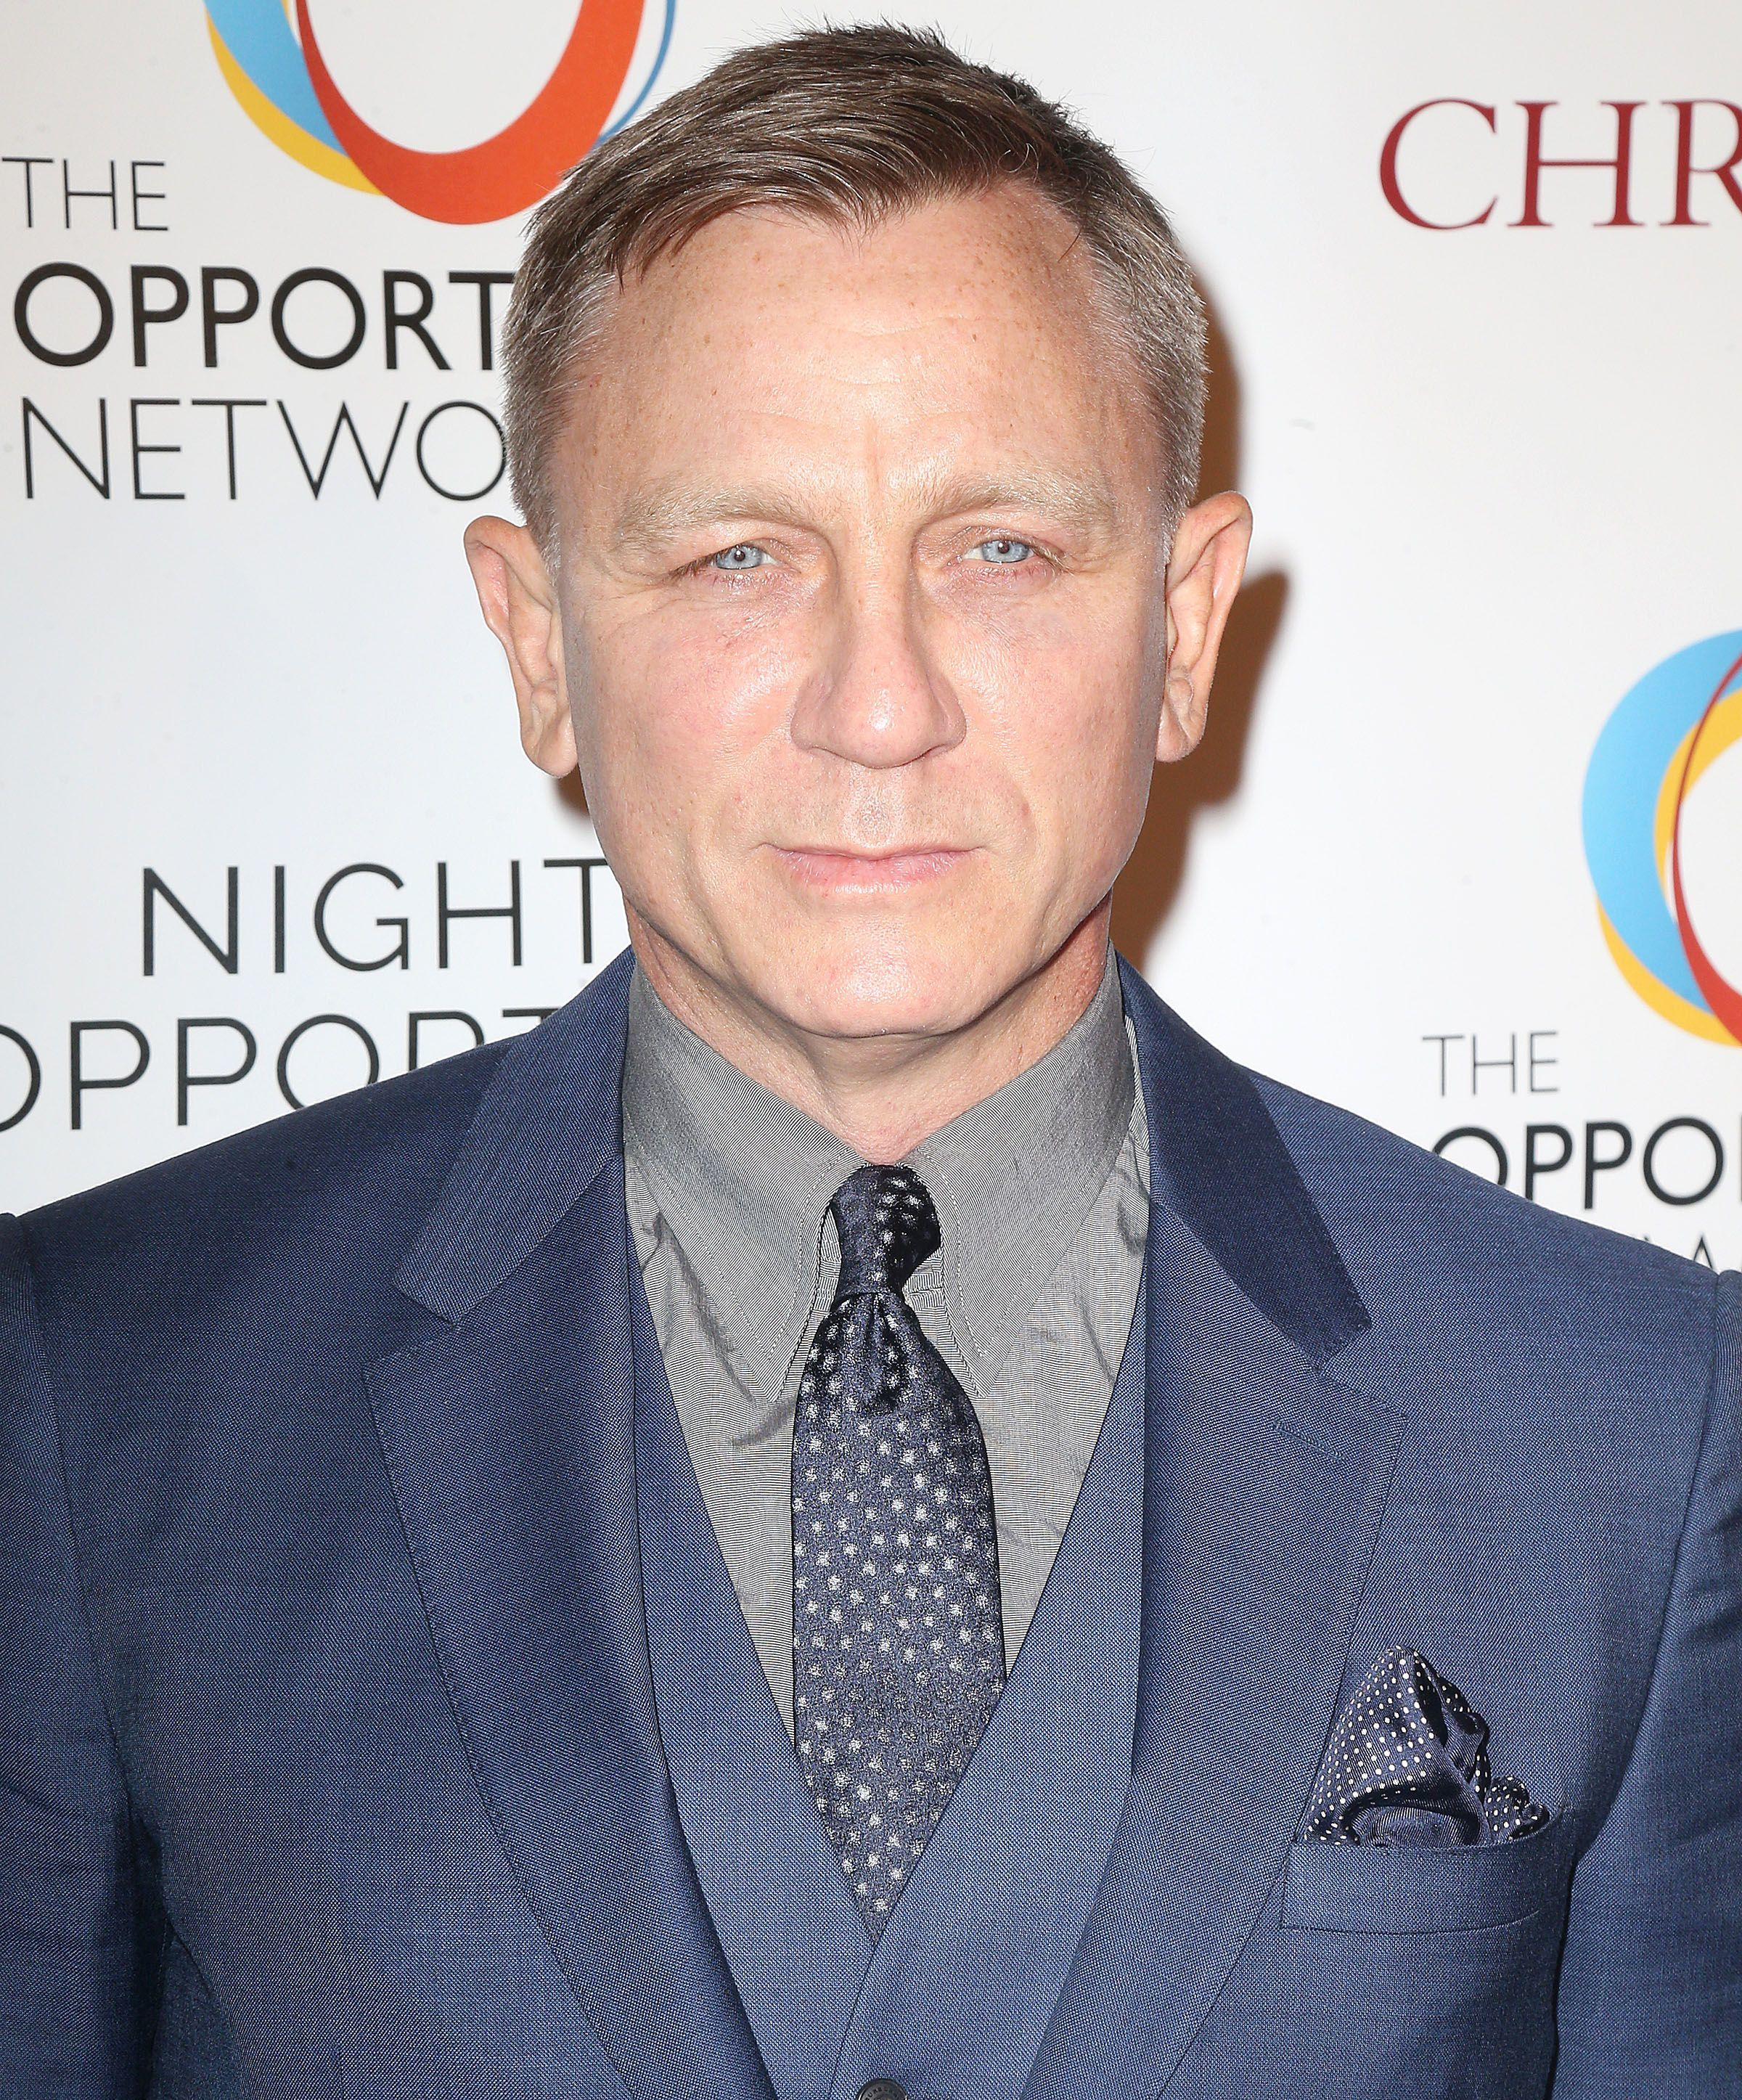 Daniel Craig attends the Night of Opportunity Gala in New York City on April 9, 2018.